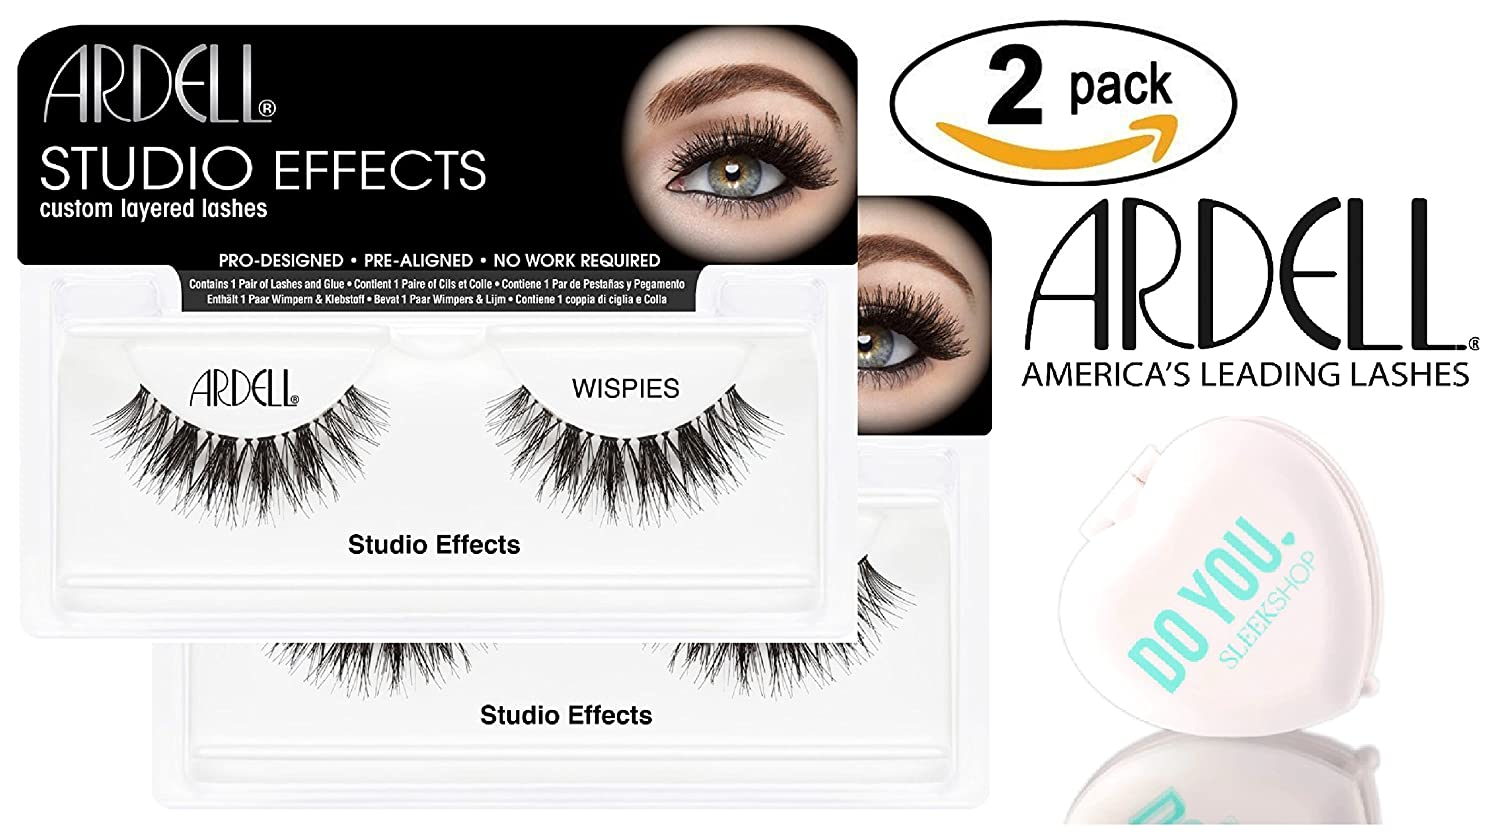 1cd08a306a1 Amazon.com : Ardell Professional STUDIO EFFECTS Custom Layered Lashes,  2-pack (with Sleek Compact Mirror) (Wispies (2-pack)) : Beauty